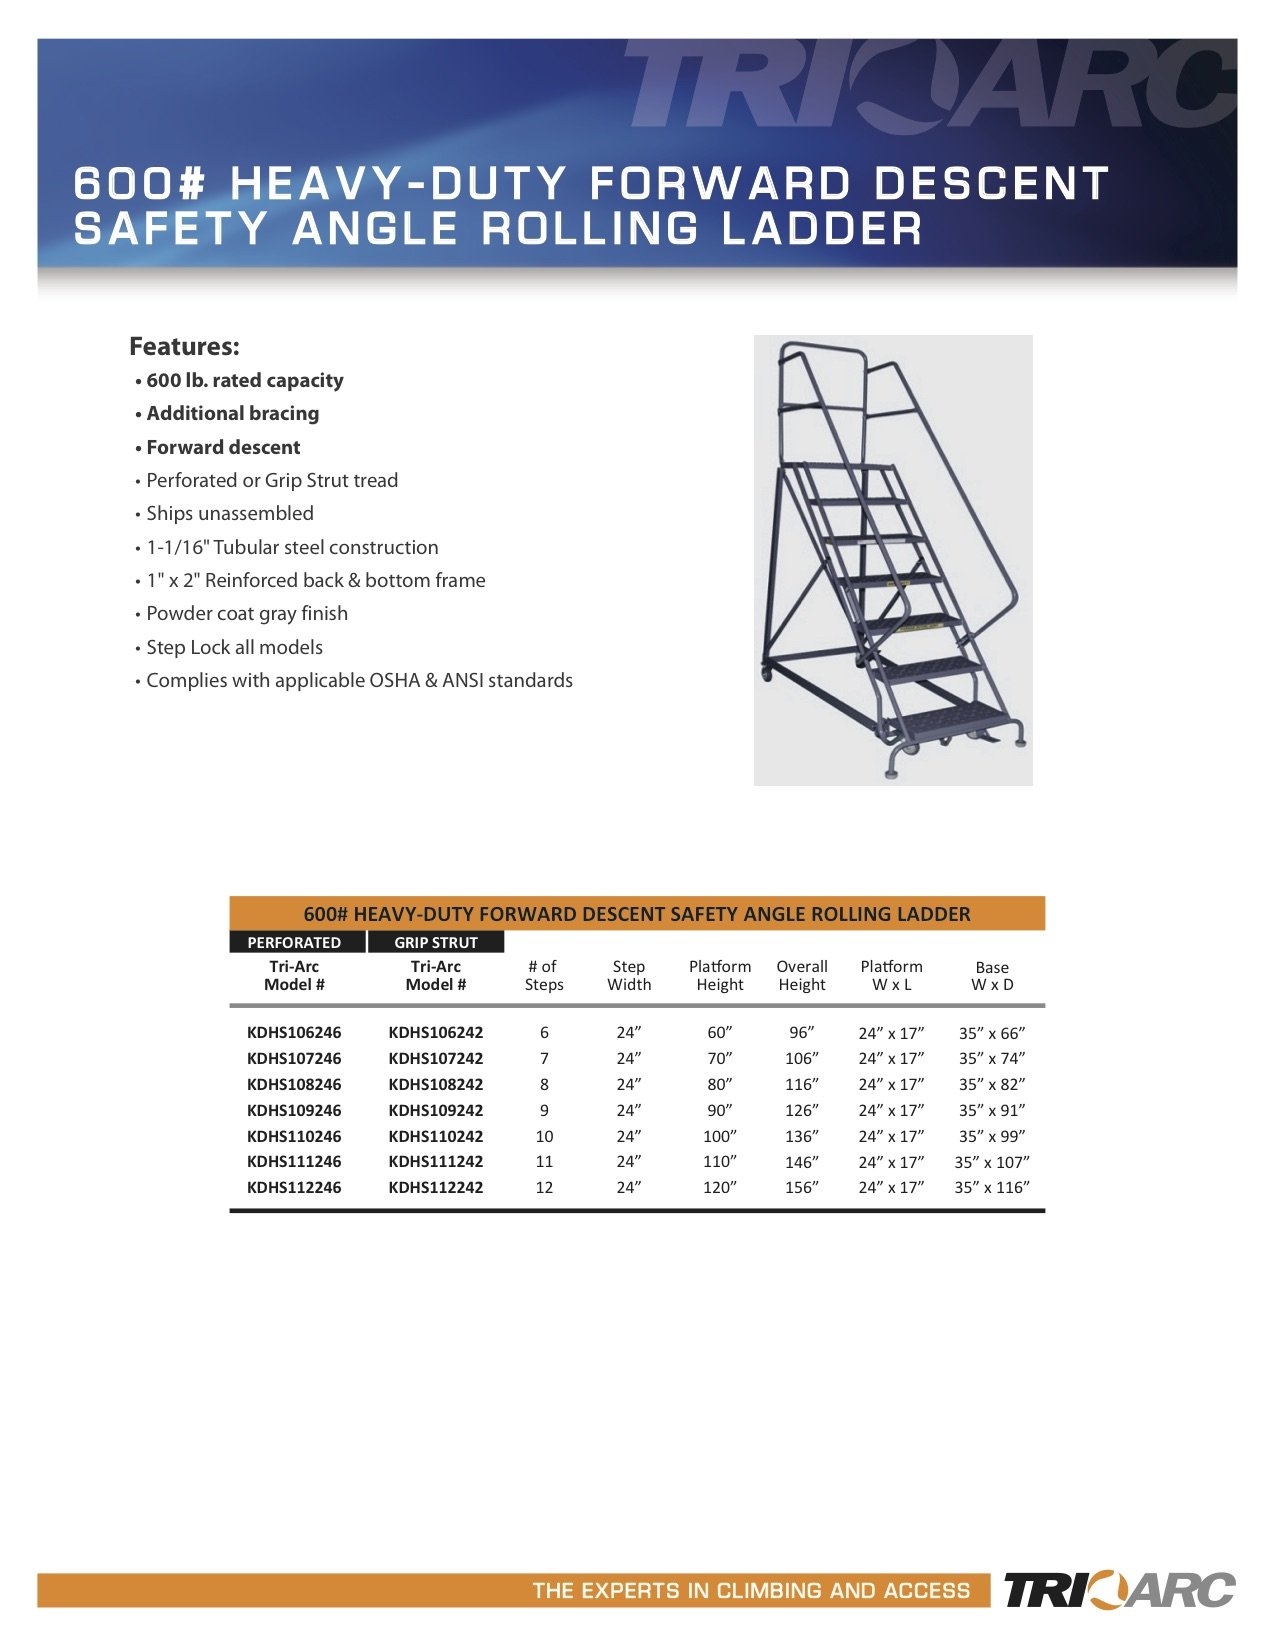 Tri-Arc KDHS106242 6-Step Heavy-Duty Safety Angle Steel Rolling Industrial & Warehouse Ladder with Grip Strut Tread